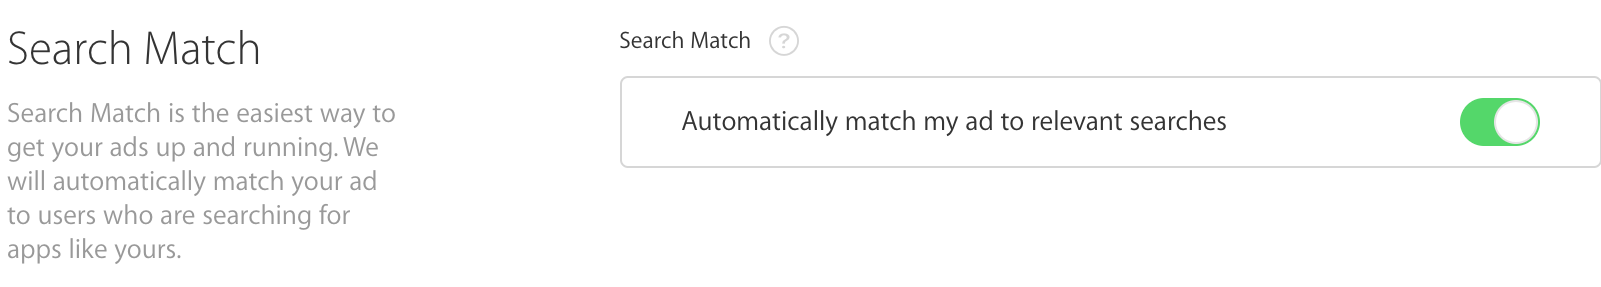 Search Match built in Search Ads